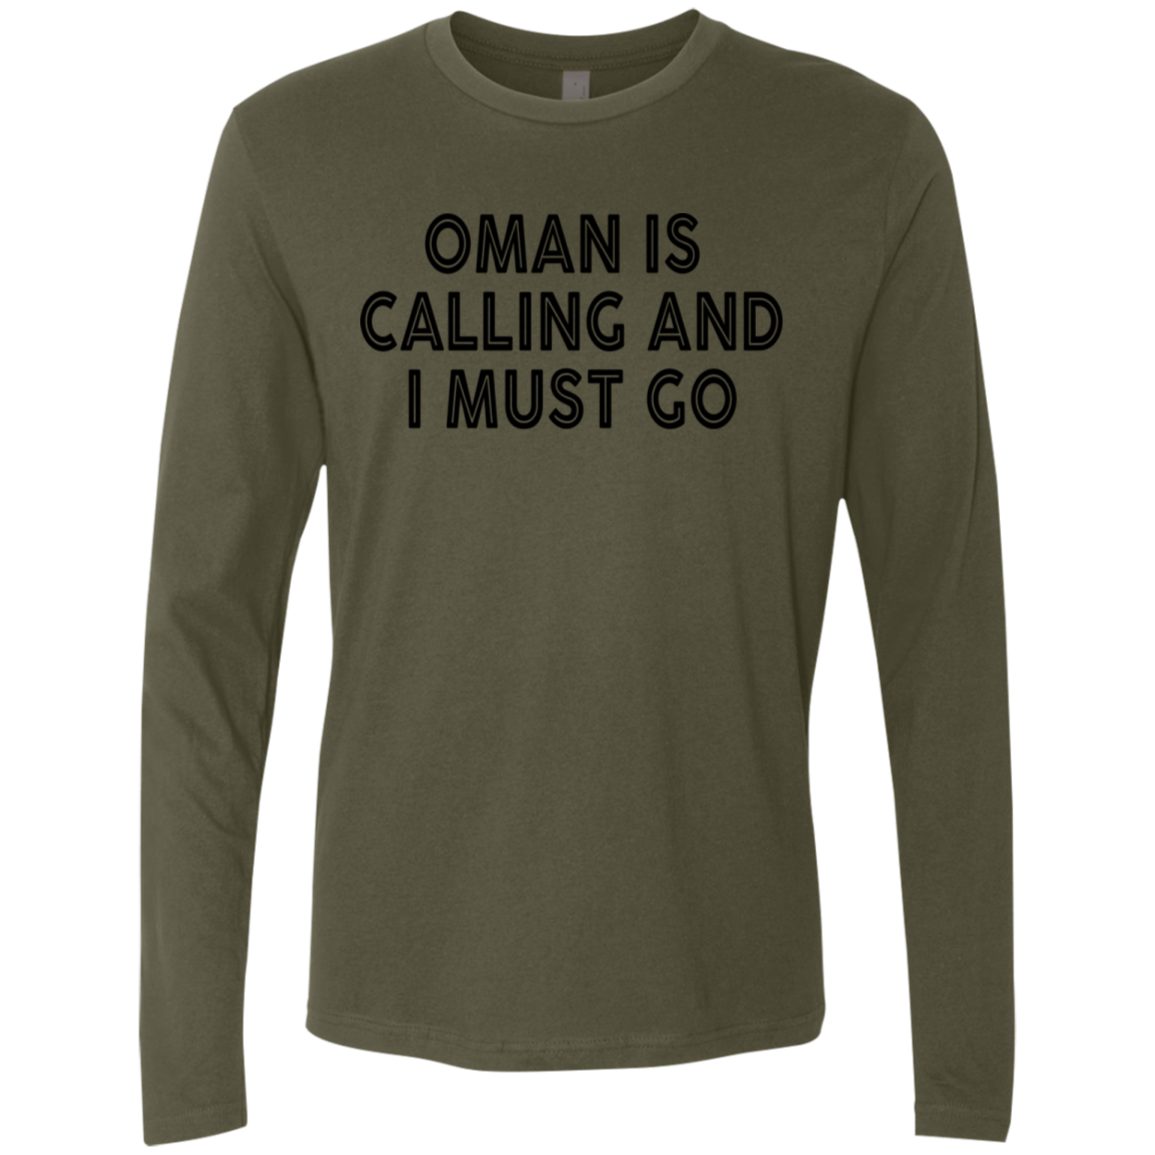 Oman Is Calling And I Must Go Men's Long Sleeve Tee